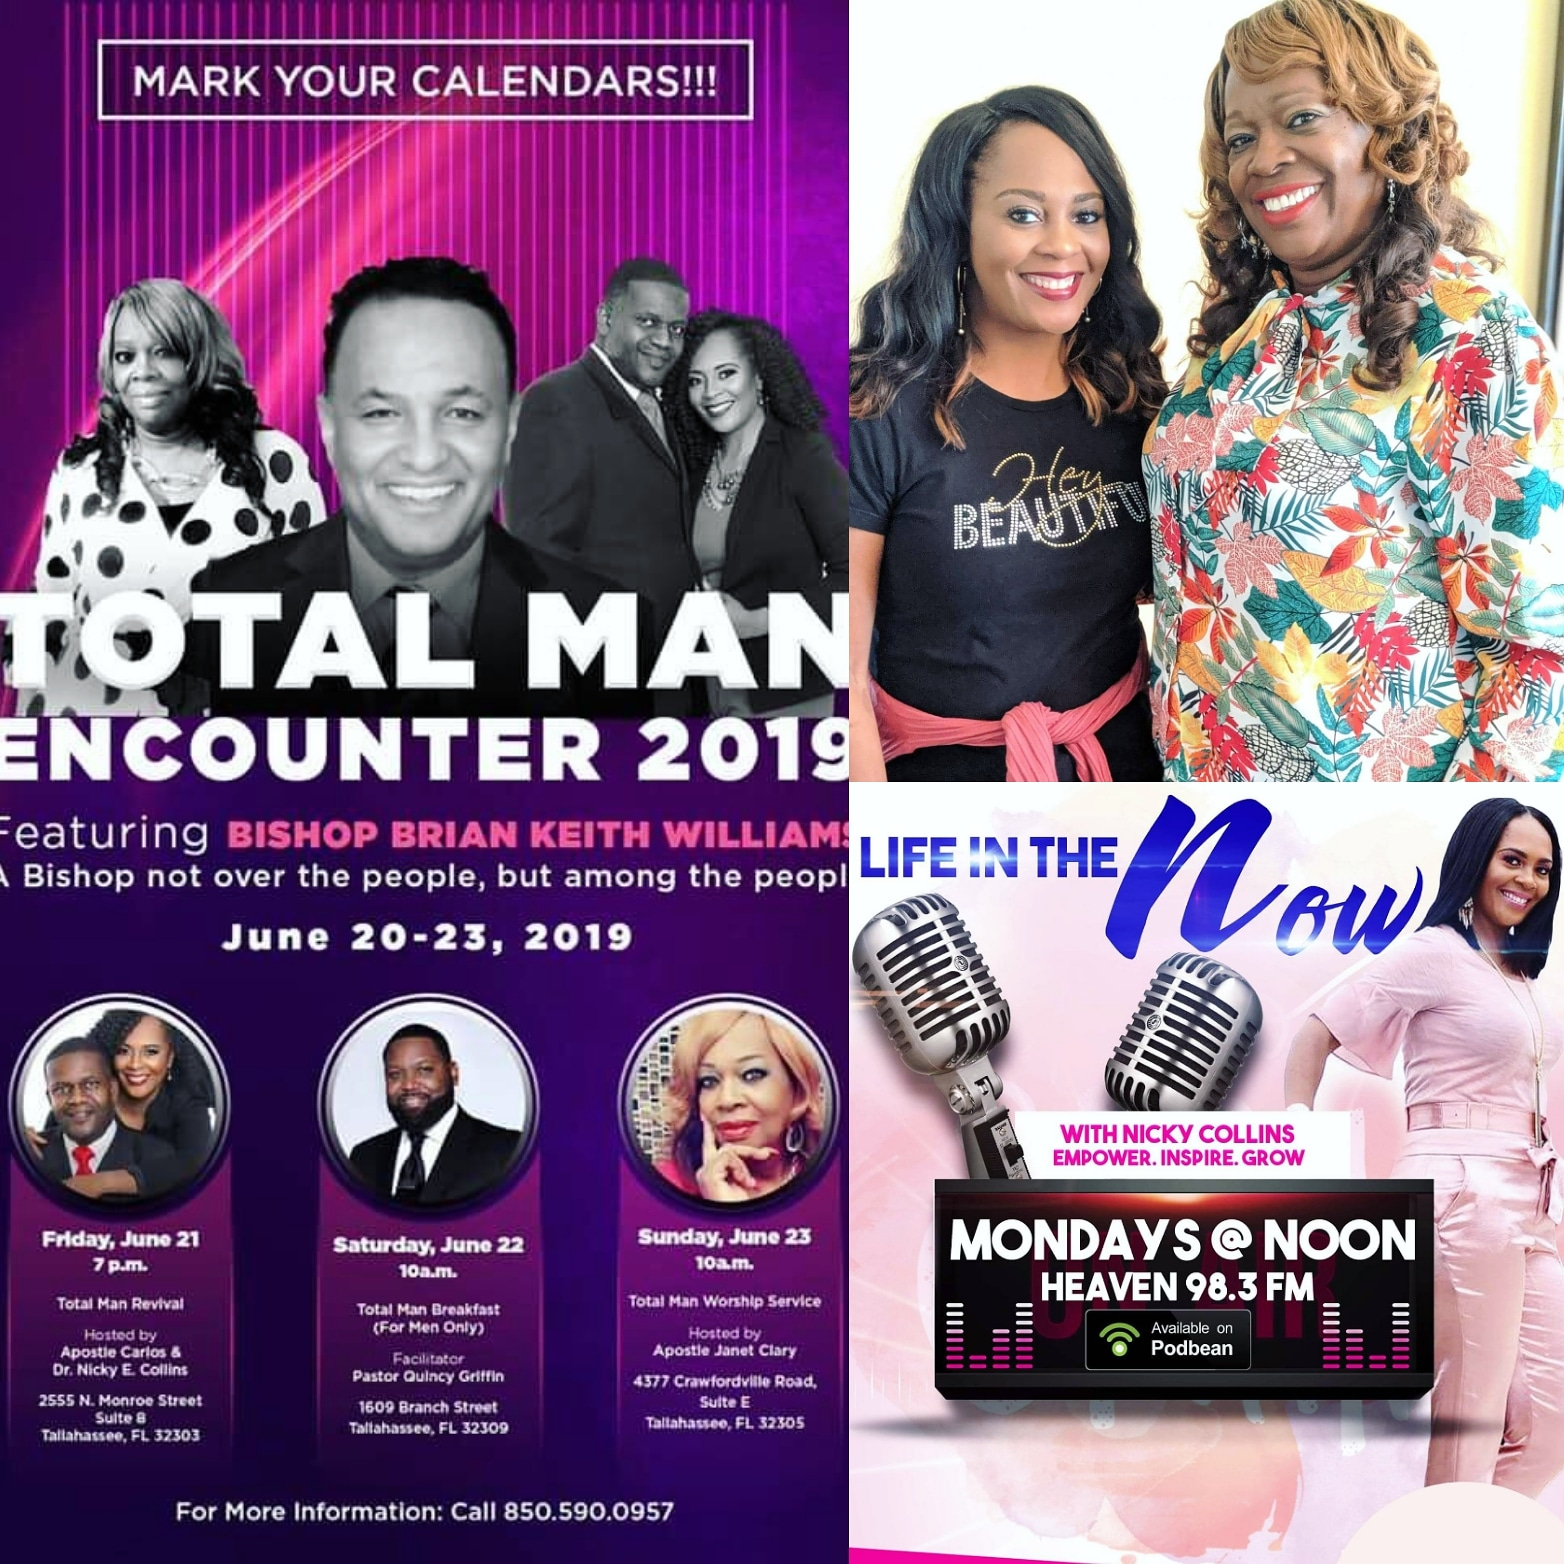 Life In The Now Podcast: Total Man Encounter 2019